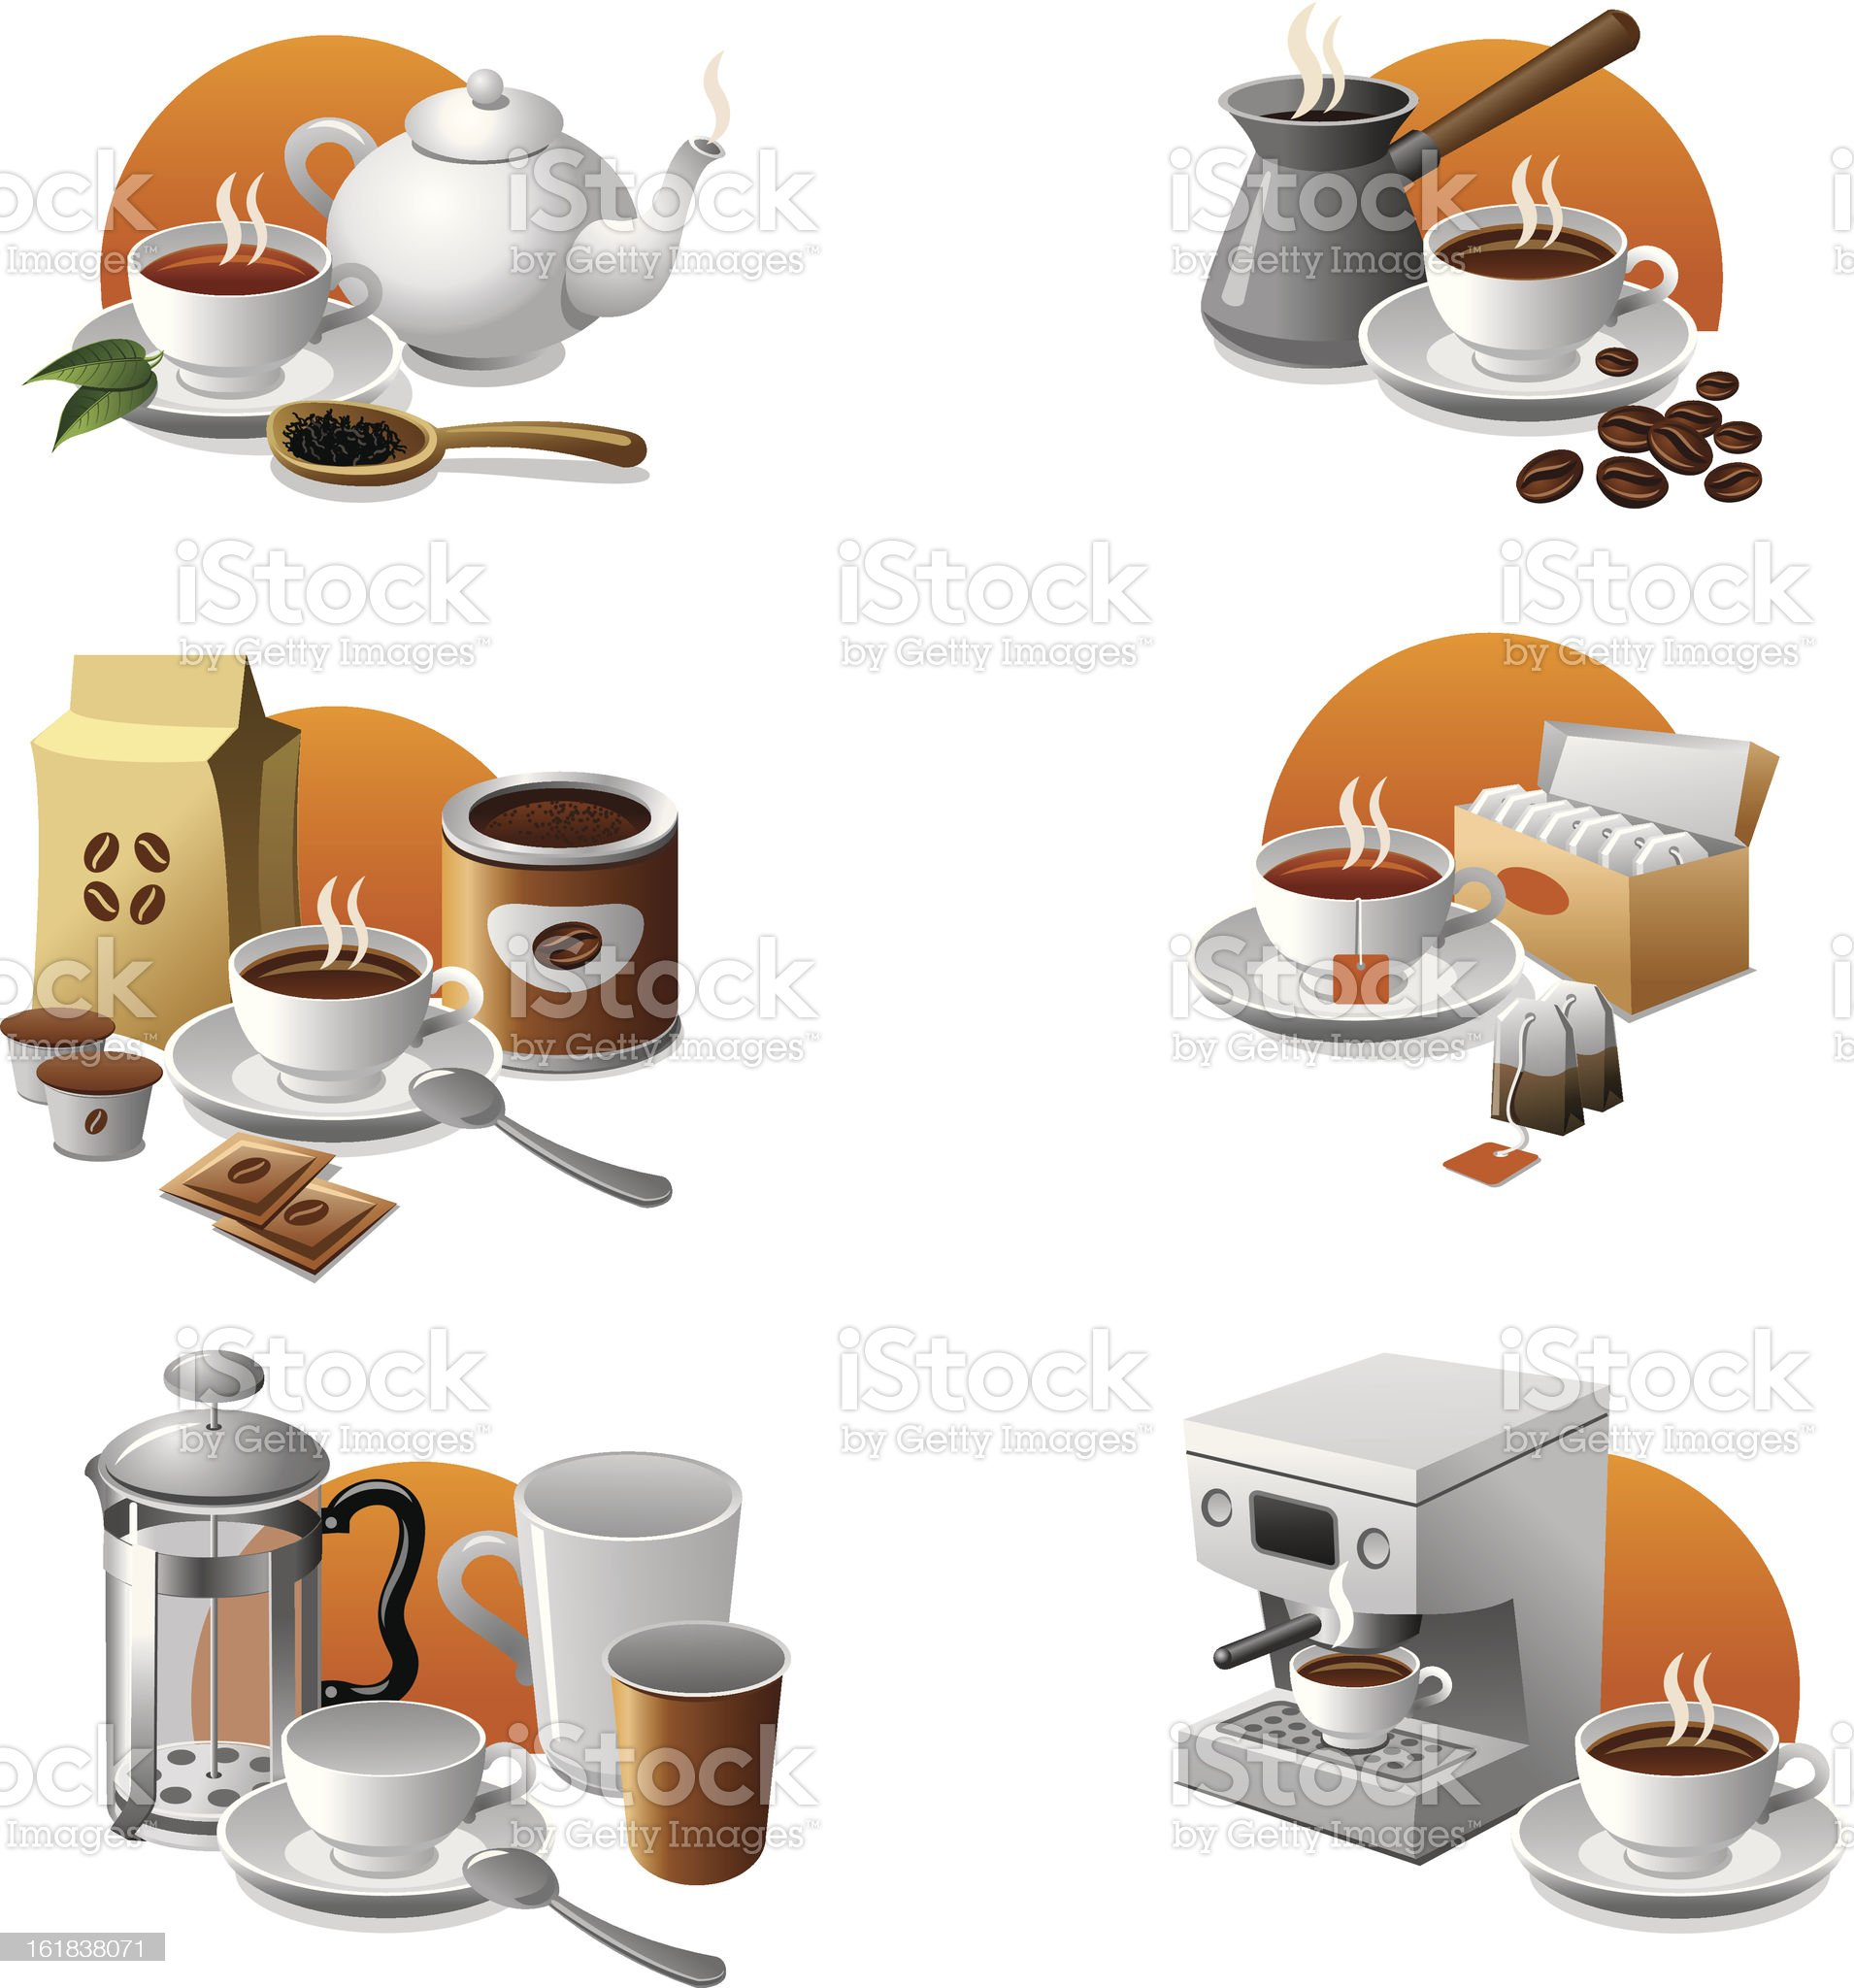 coffee and tea icon set royalty-free stock vector art